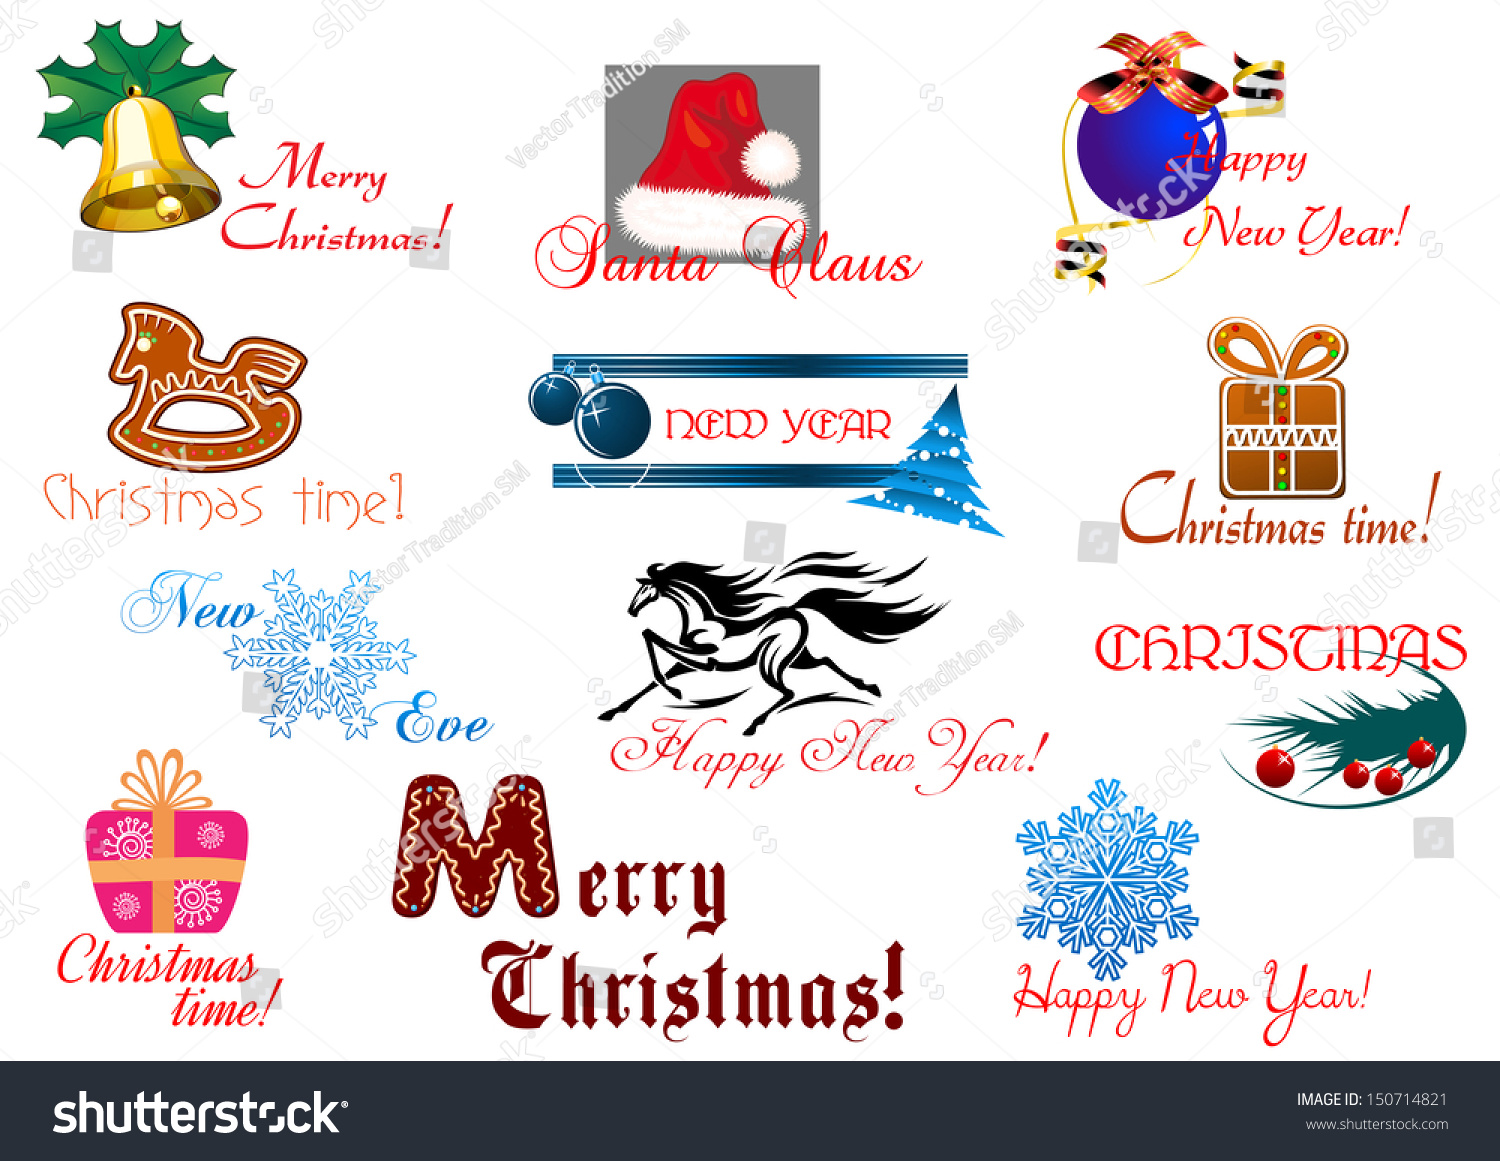 christmas and new year holiday elements with headlines bitmap jpeg version also available